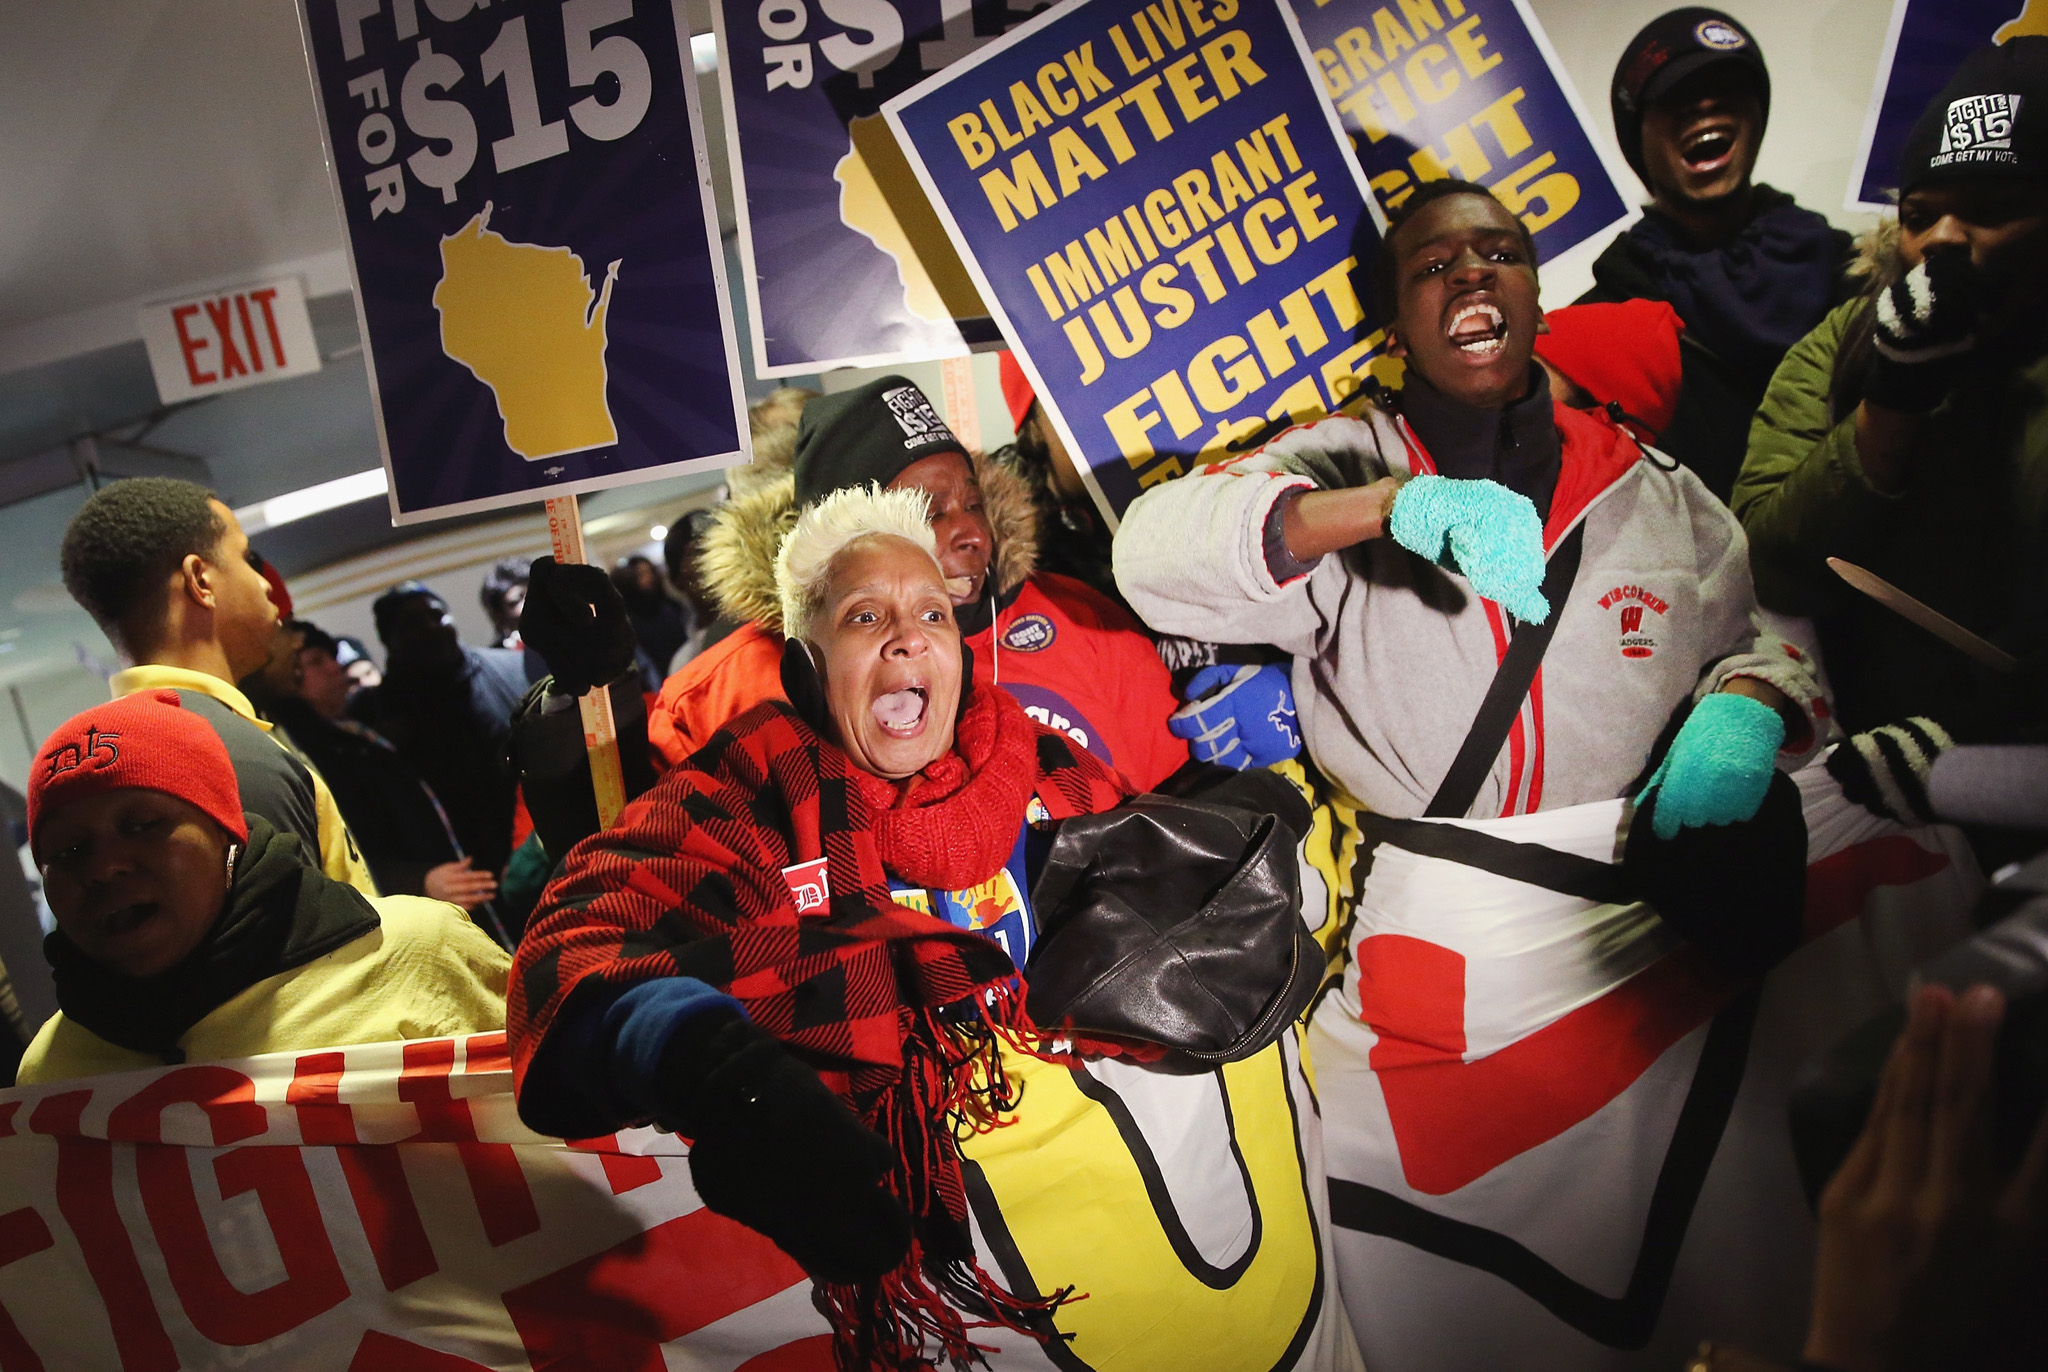 Demonstrators protesting for an increase in the minimum wage enter the media file center at the PBS NewsHour Democratic presidential candidate debate at the University of Wisconsin-Milwaukee